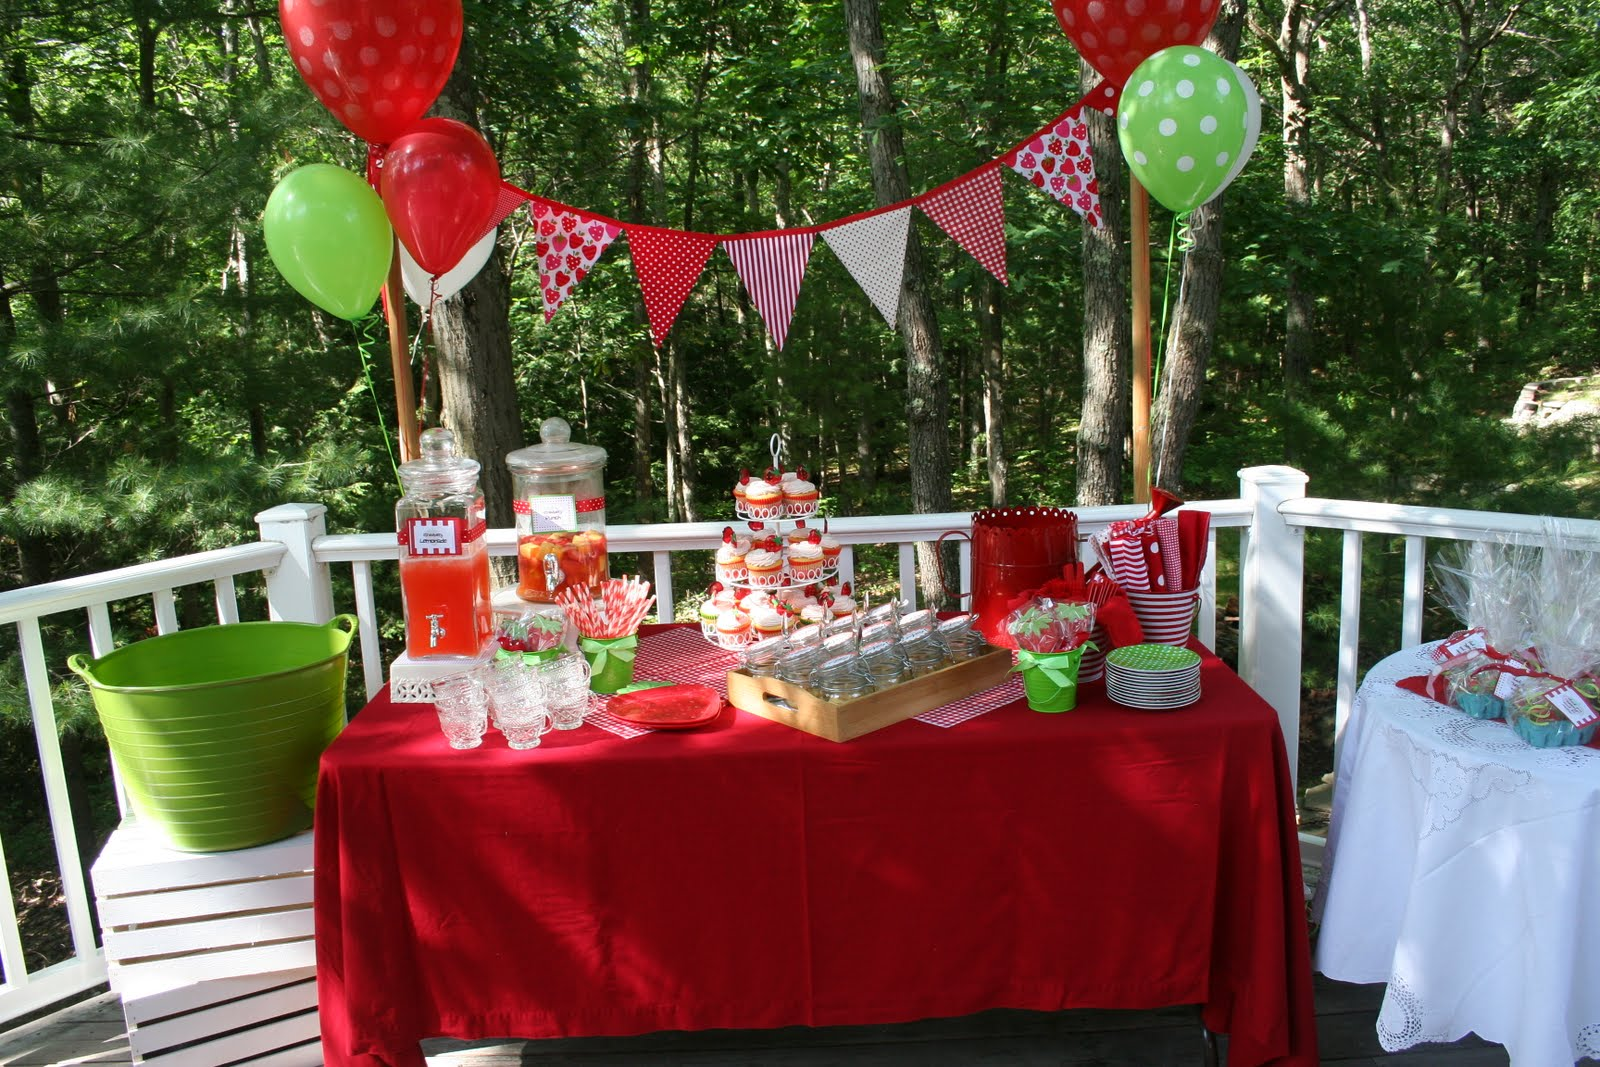 Celebrate!: Strawberry Birthday Picnic